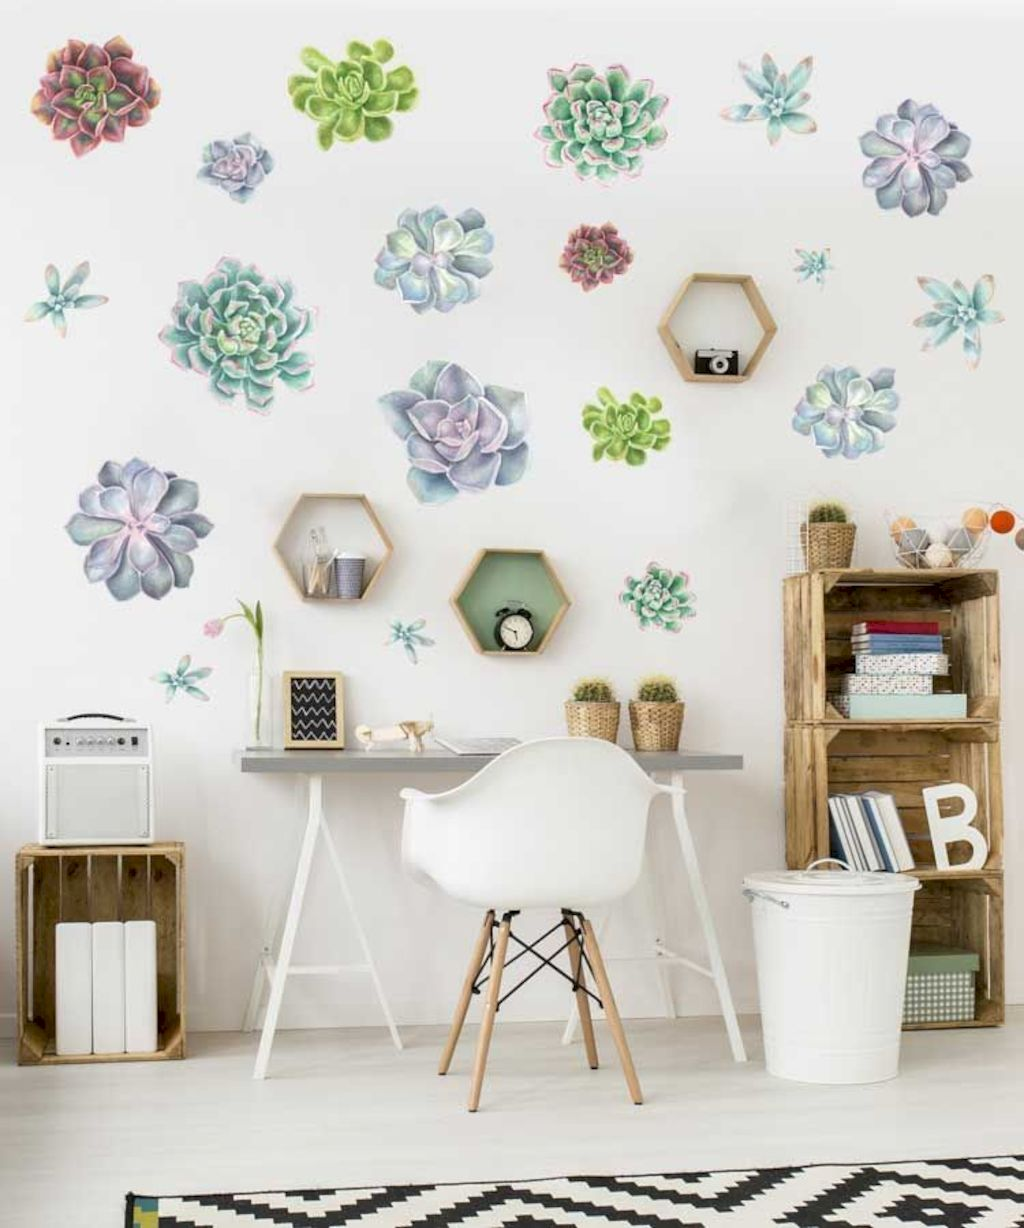 Refreshing sticker art wall decal giving floral accessories refreshing kids and nursery rooms wall design ideas Image 34